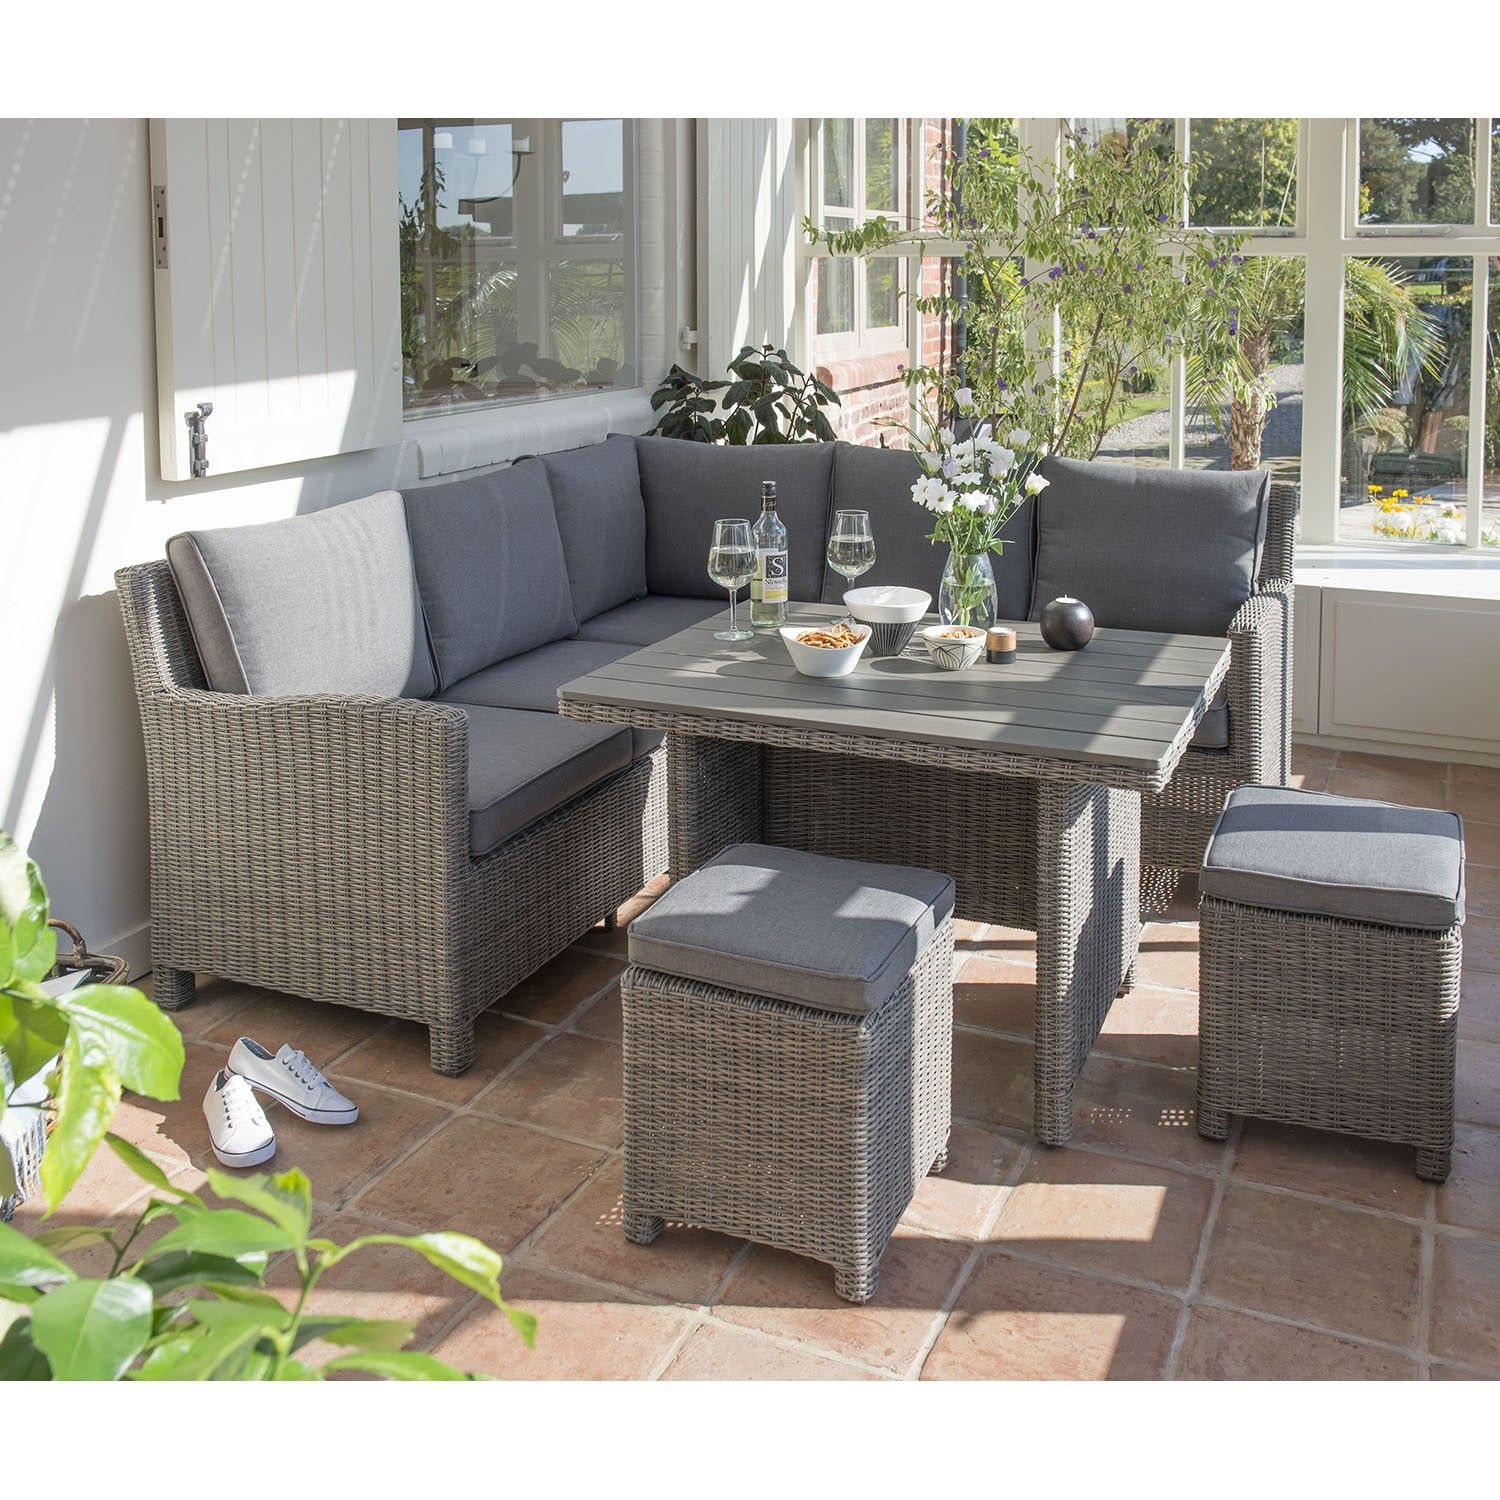 Kettler Lounge The Kettler Palma Mini Set Is A Perfect Combination Of Both Lounge